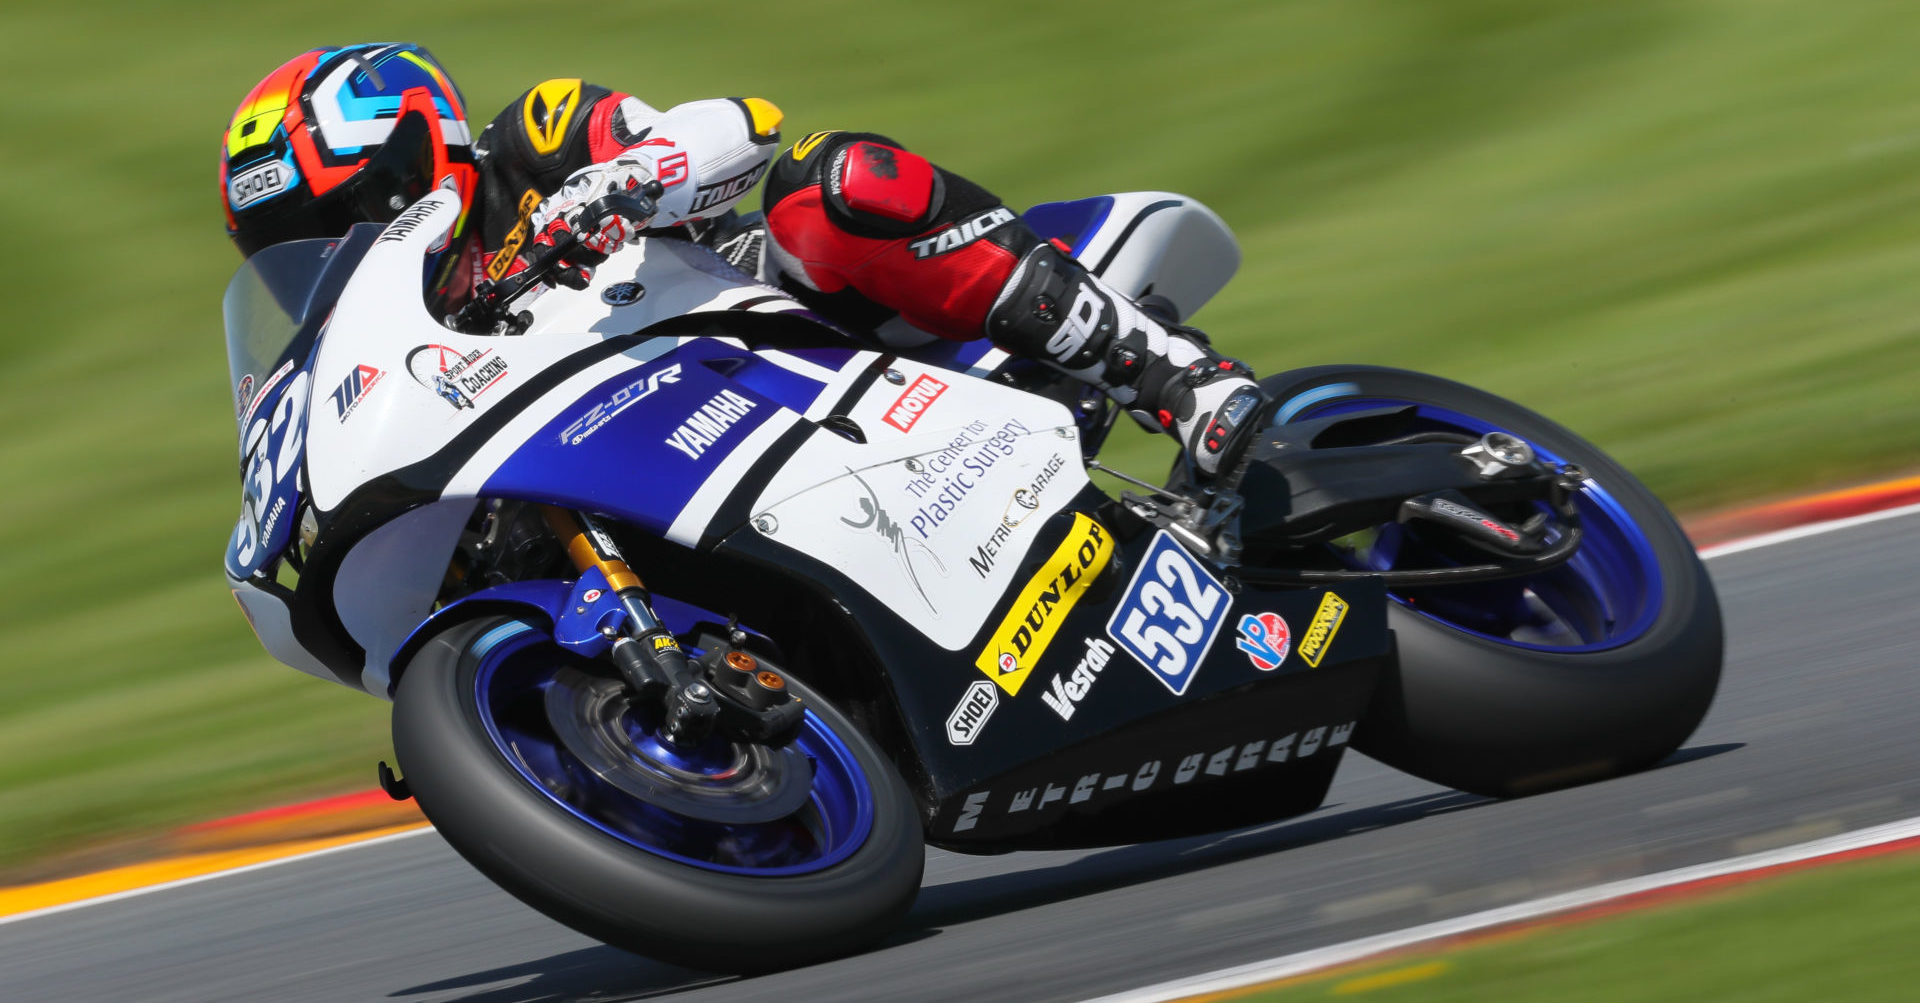 Dr. Carl Price (532) in action during the 2019 MotoAmerica Twins Cup finale at Barber Motorsports Park. Photo by Brian J. Nelson, courtesy of Robem Engineering.